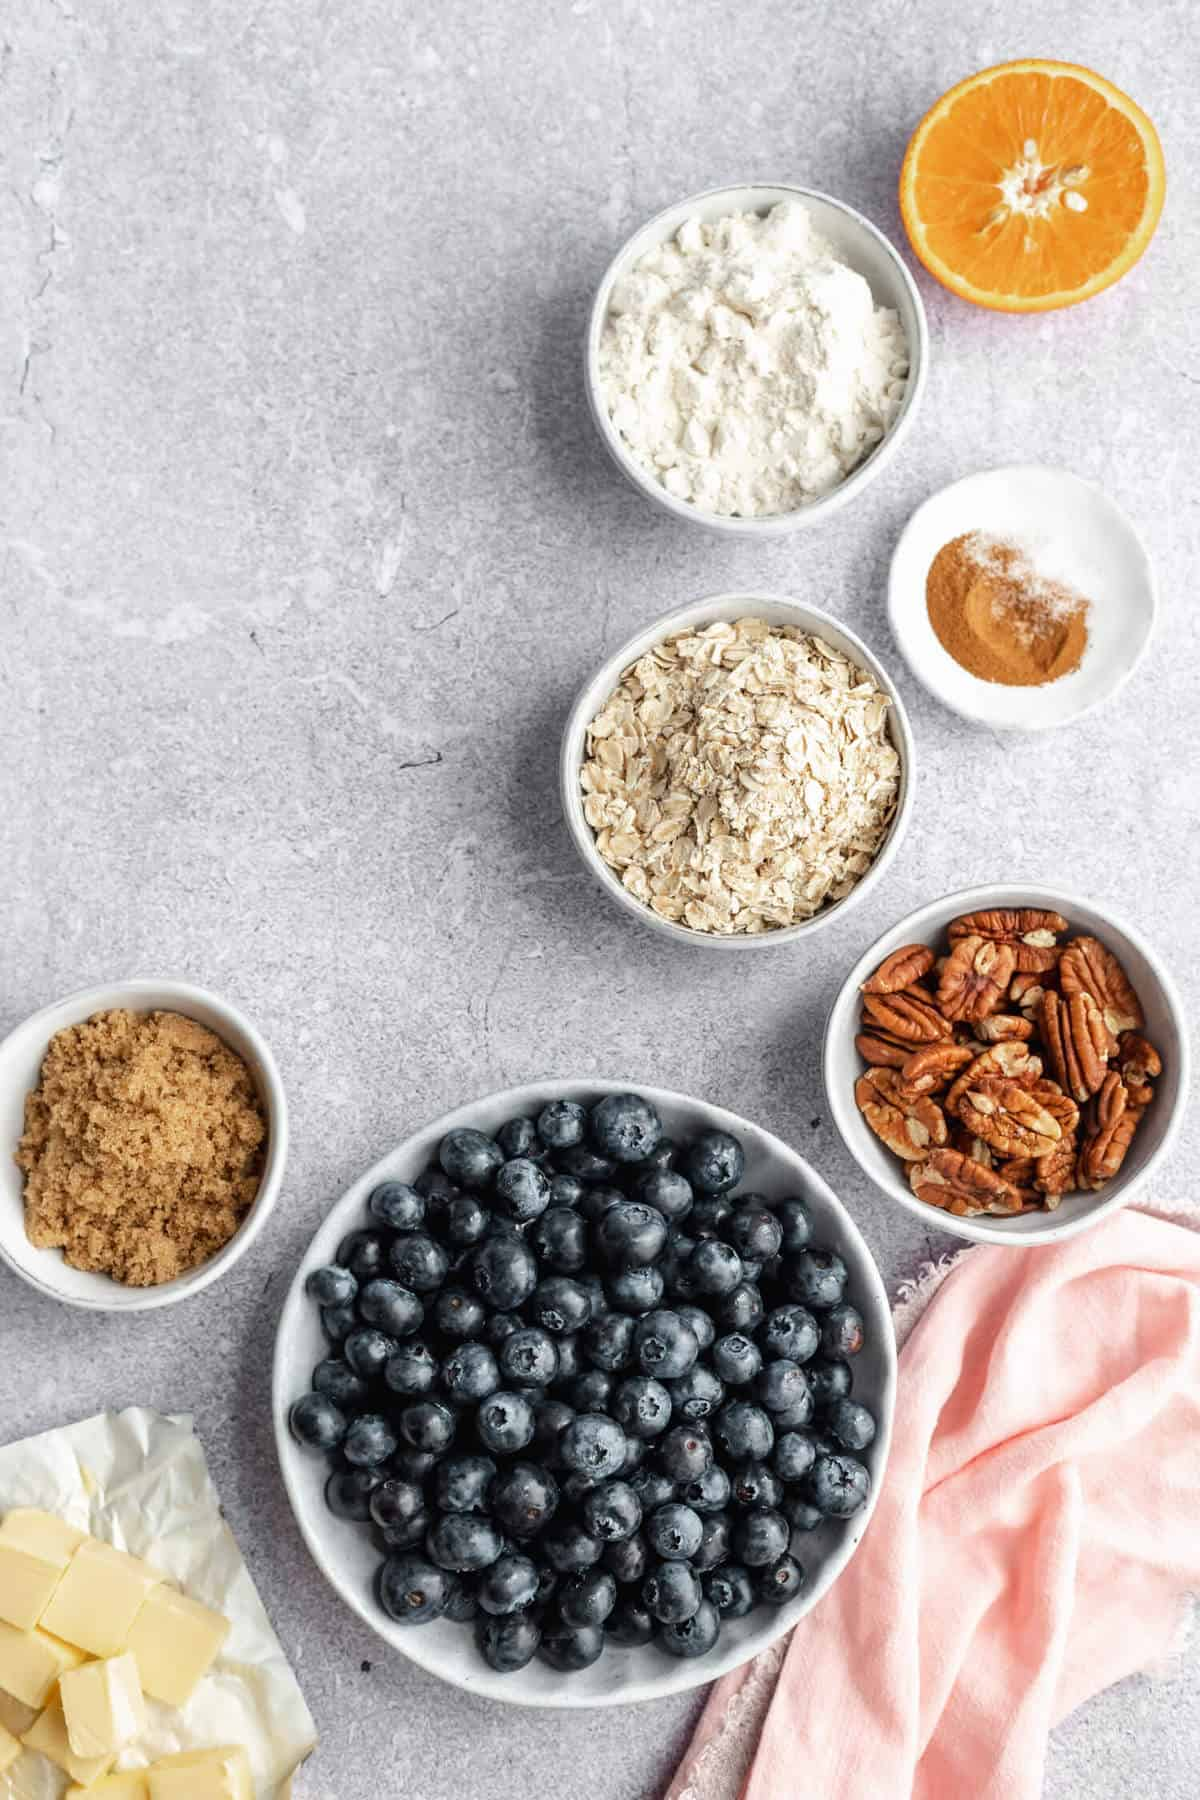 a variety of ingredients in bowls on a concrete surface